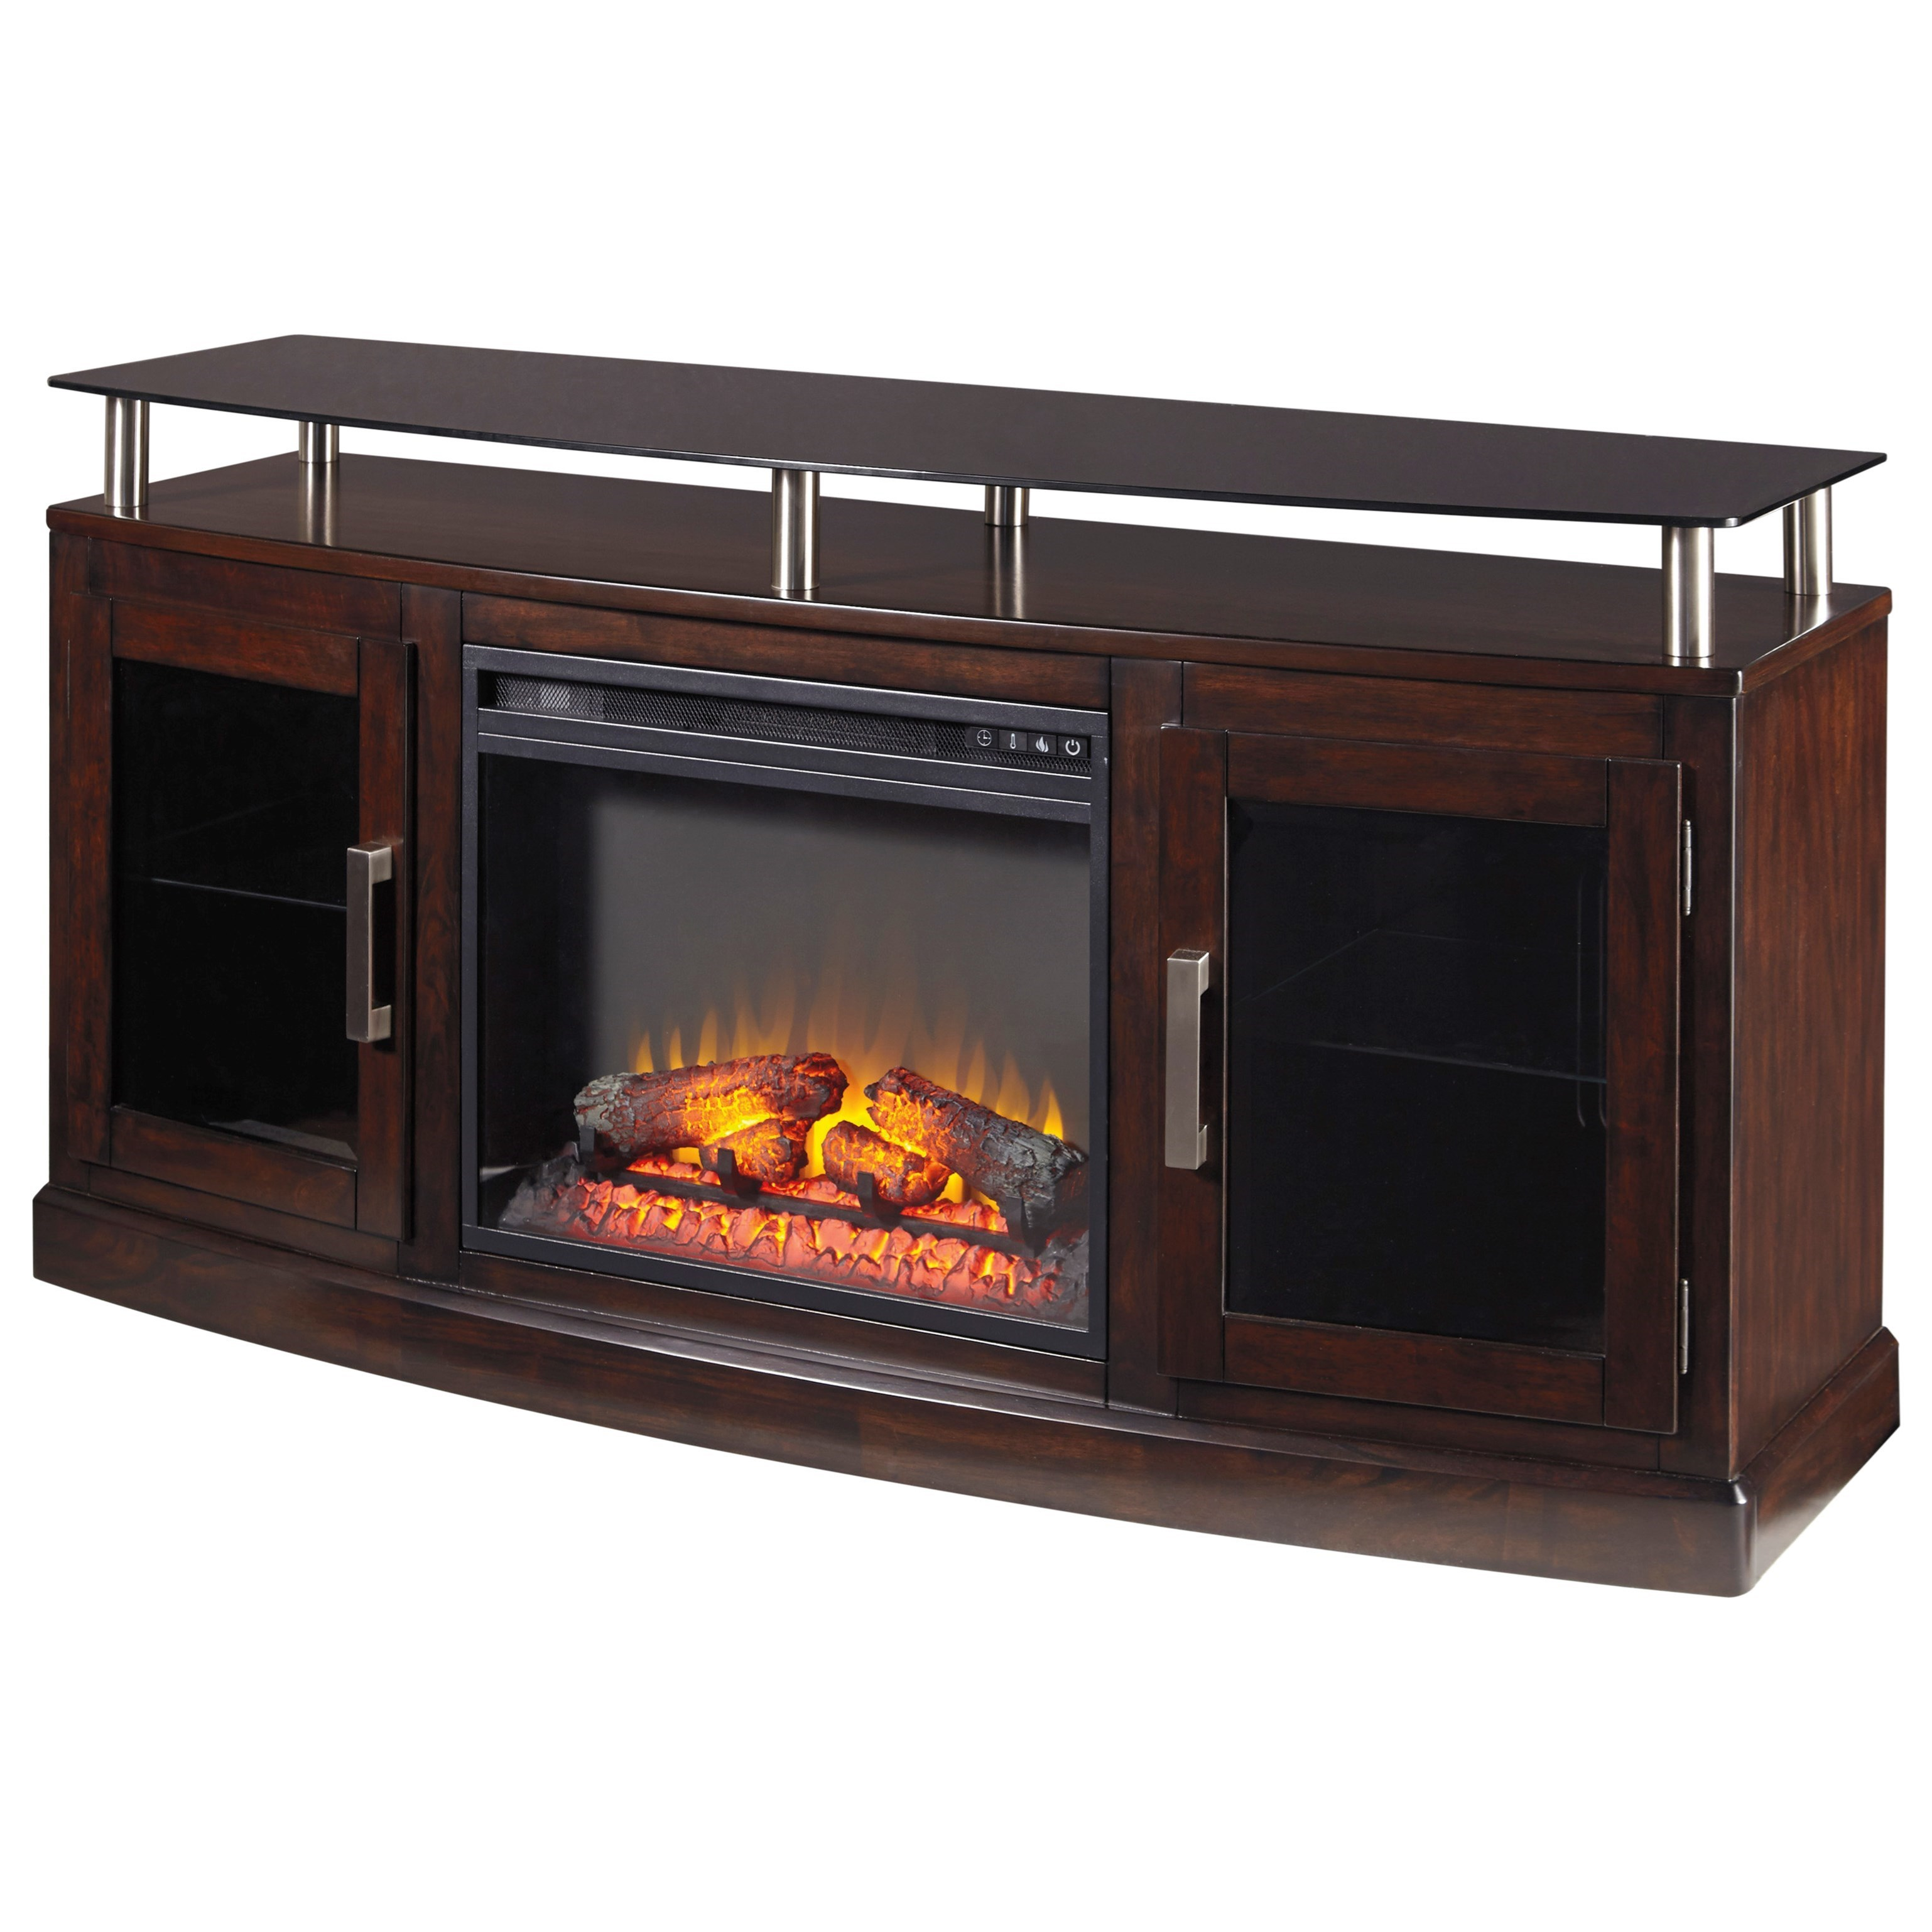 Ashley signature design chanceen tv stand with fireplace for Fireplace insert options